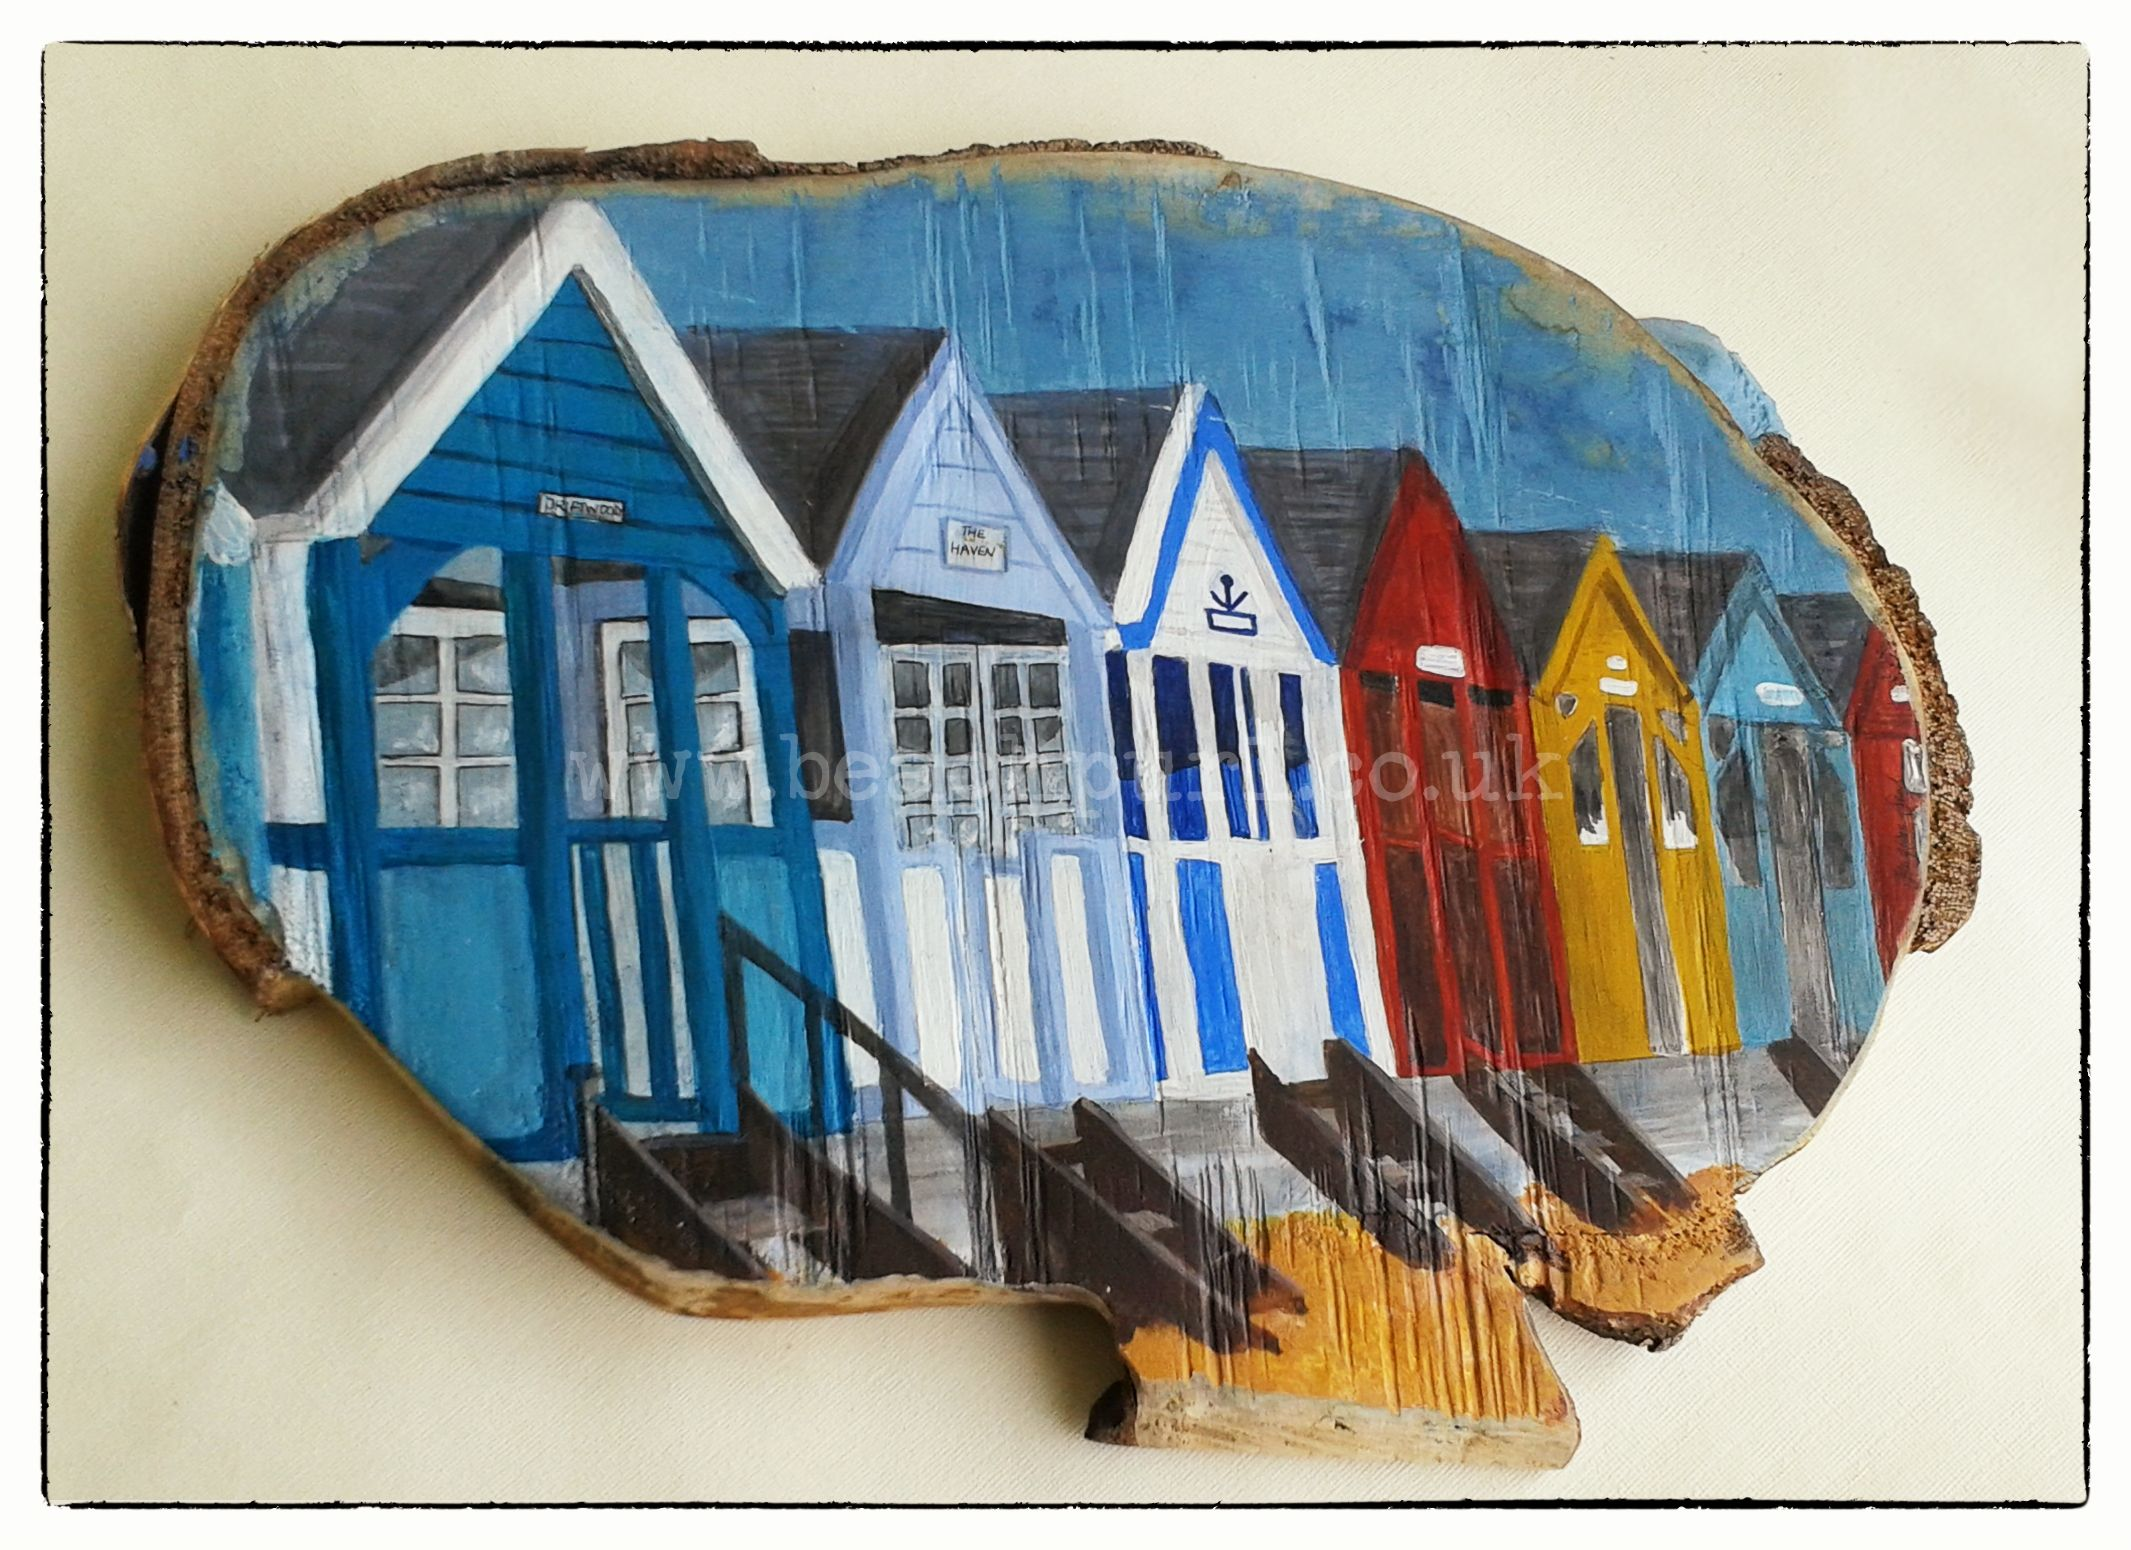 the haven painted beach huts on wood acrylic painting of